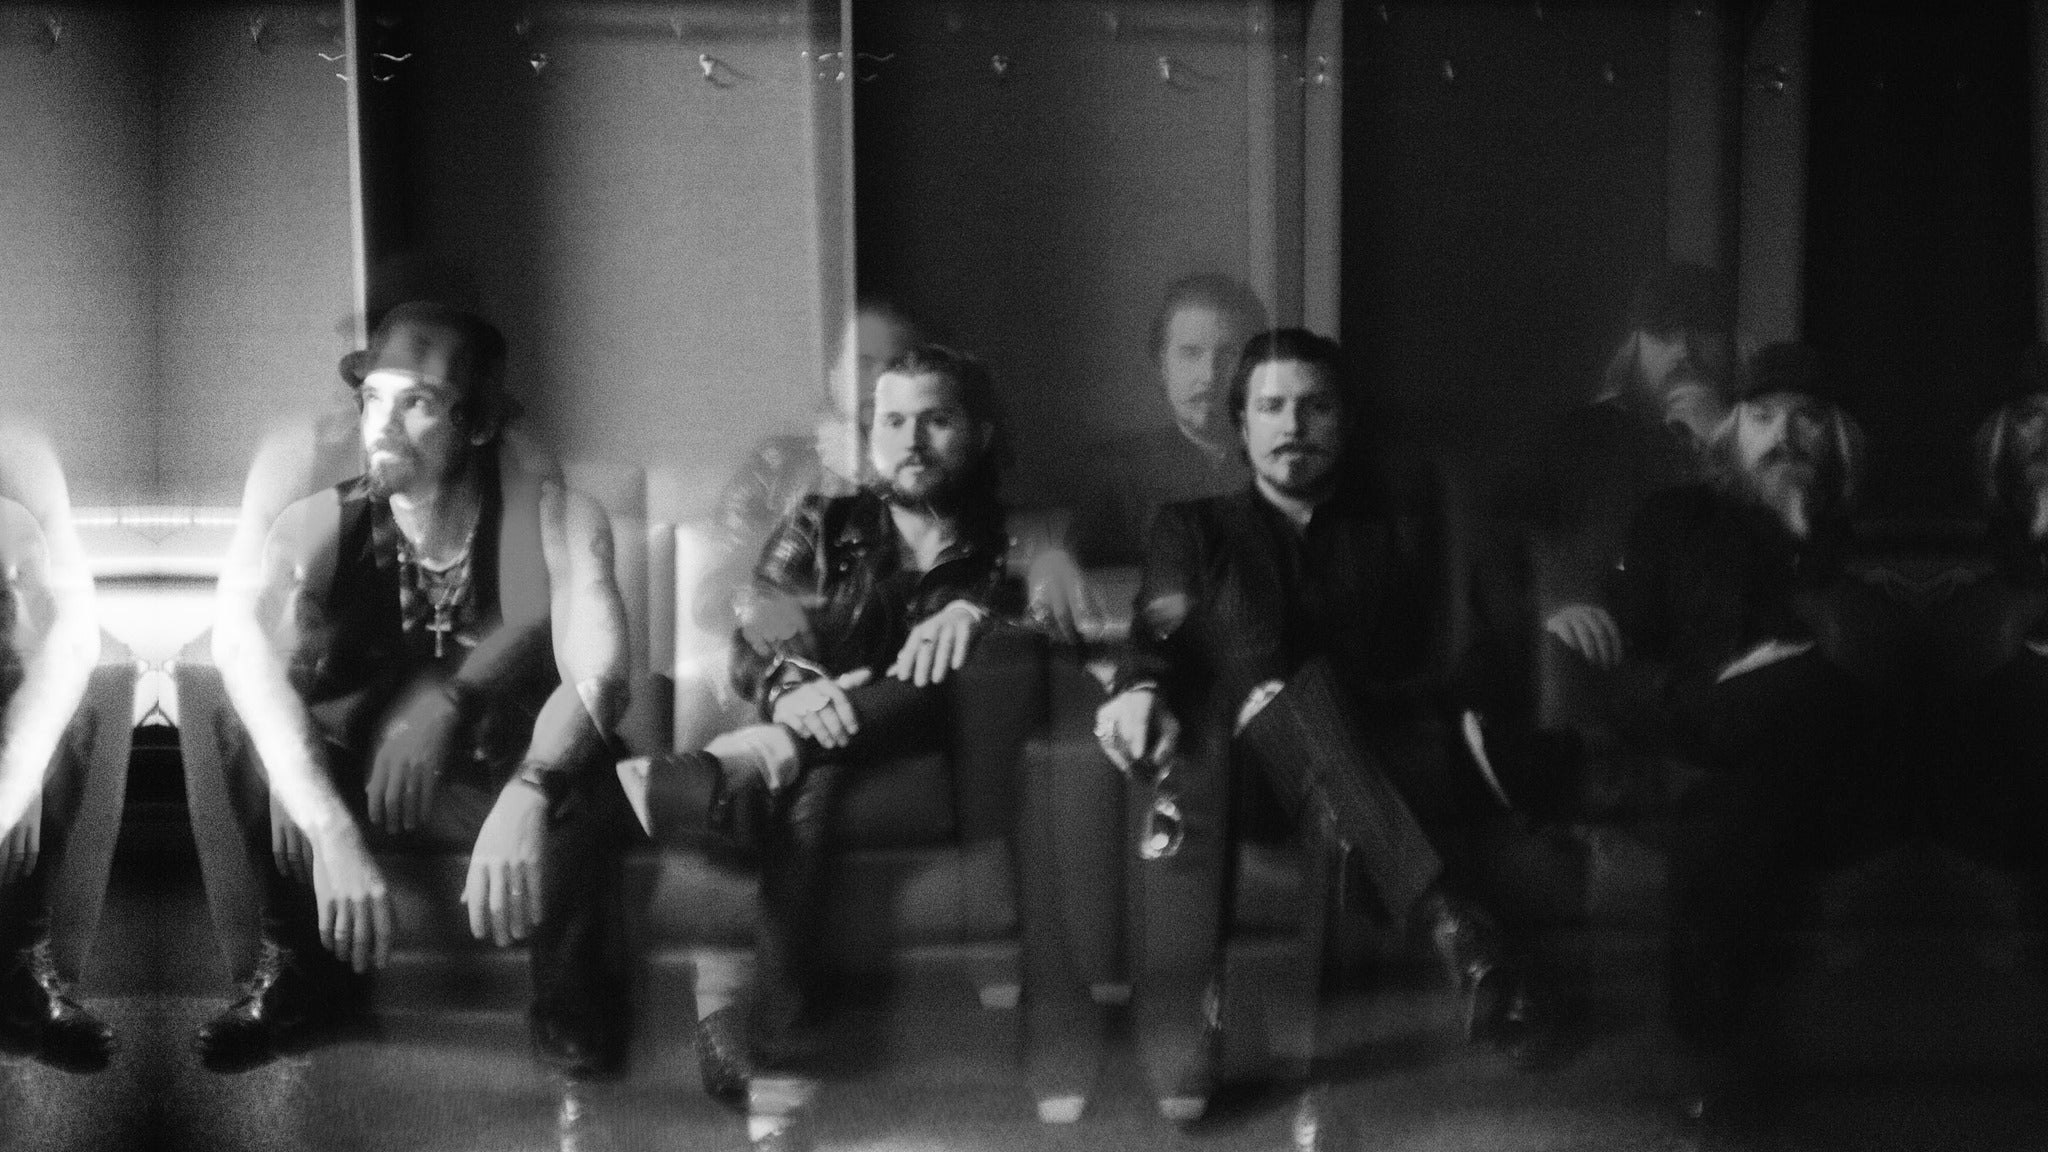 Hollow Bones Presents: Rival Sons - The Teatro Fiasco Touré